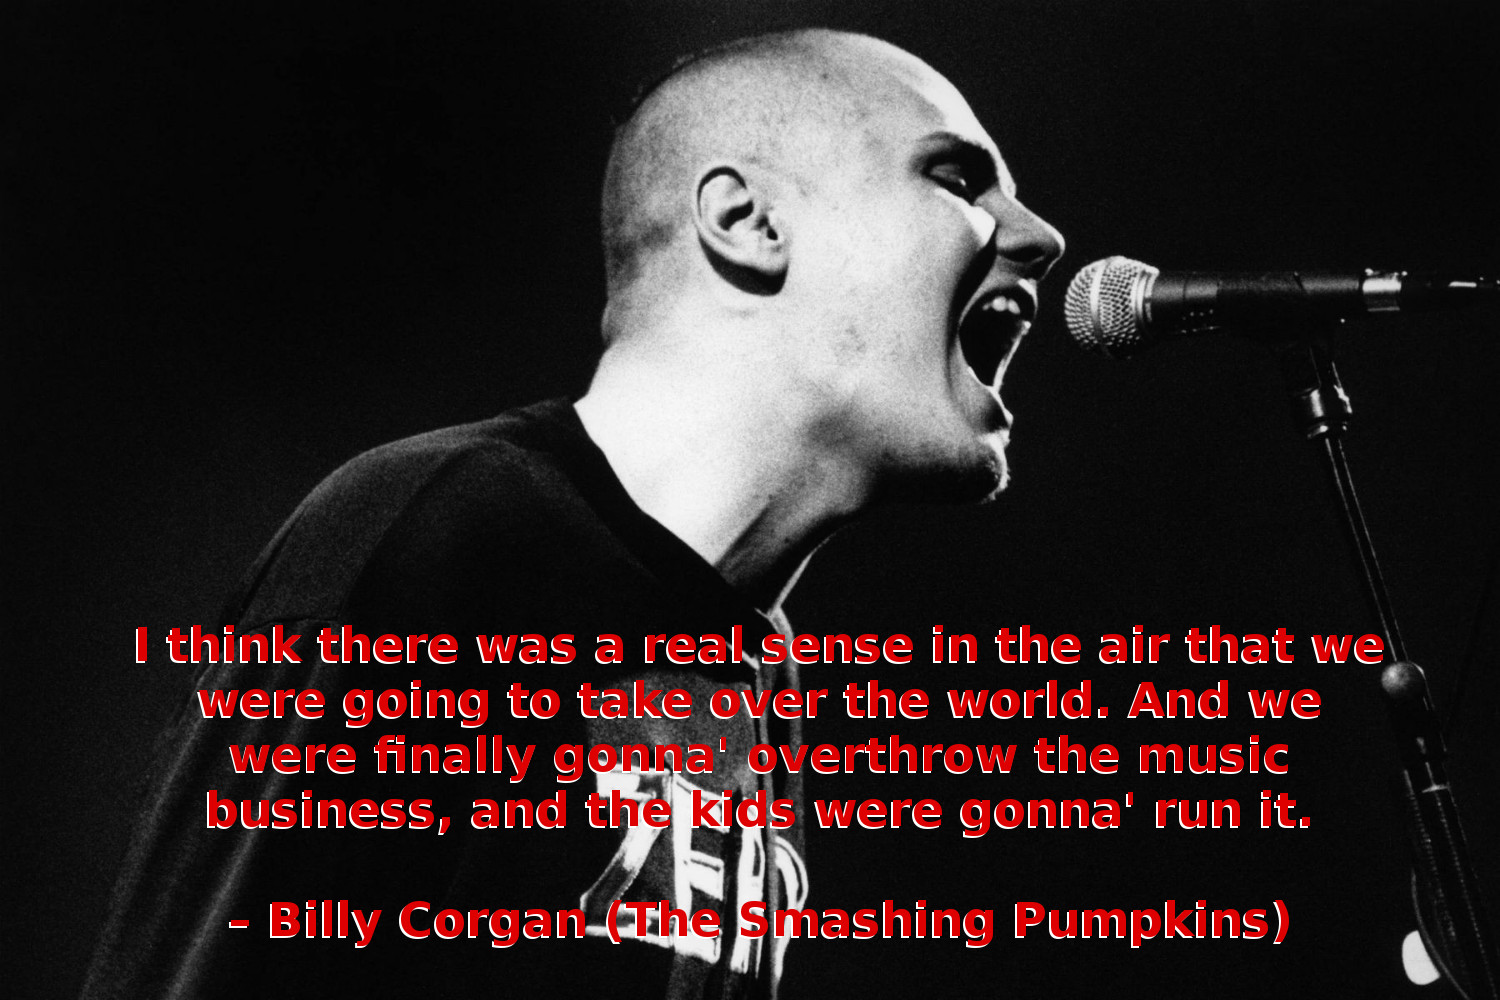 Billy Corgan on Seattle Grunge